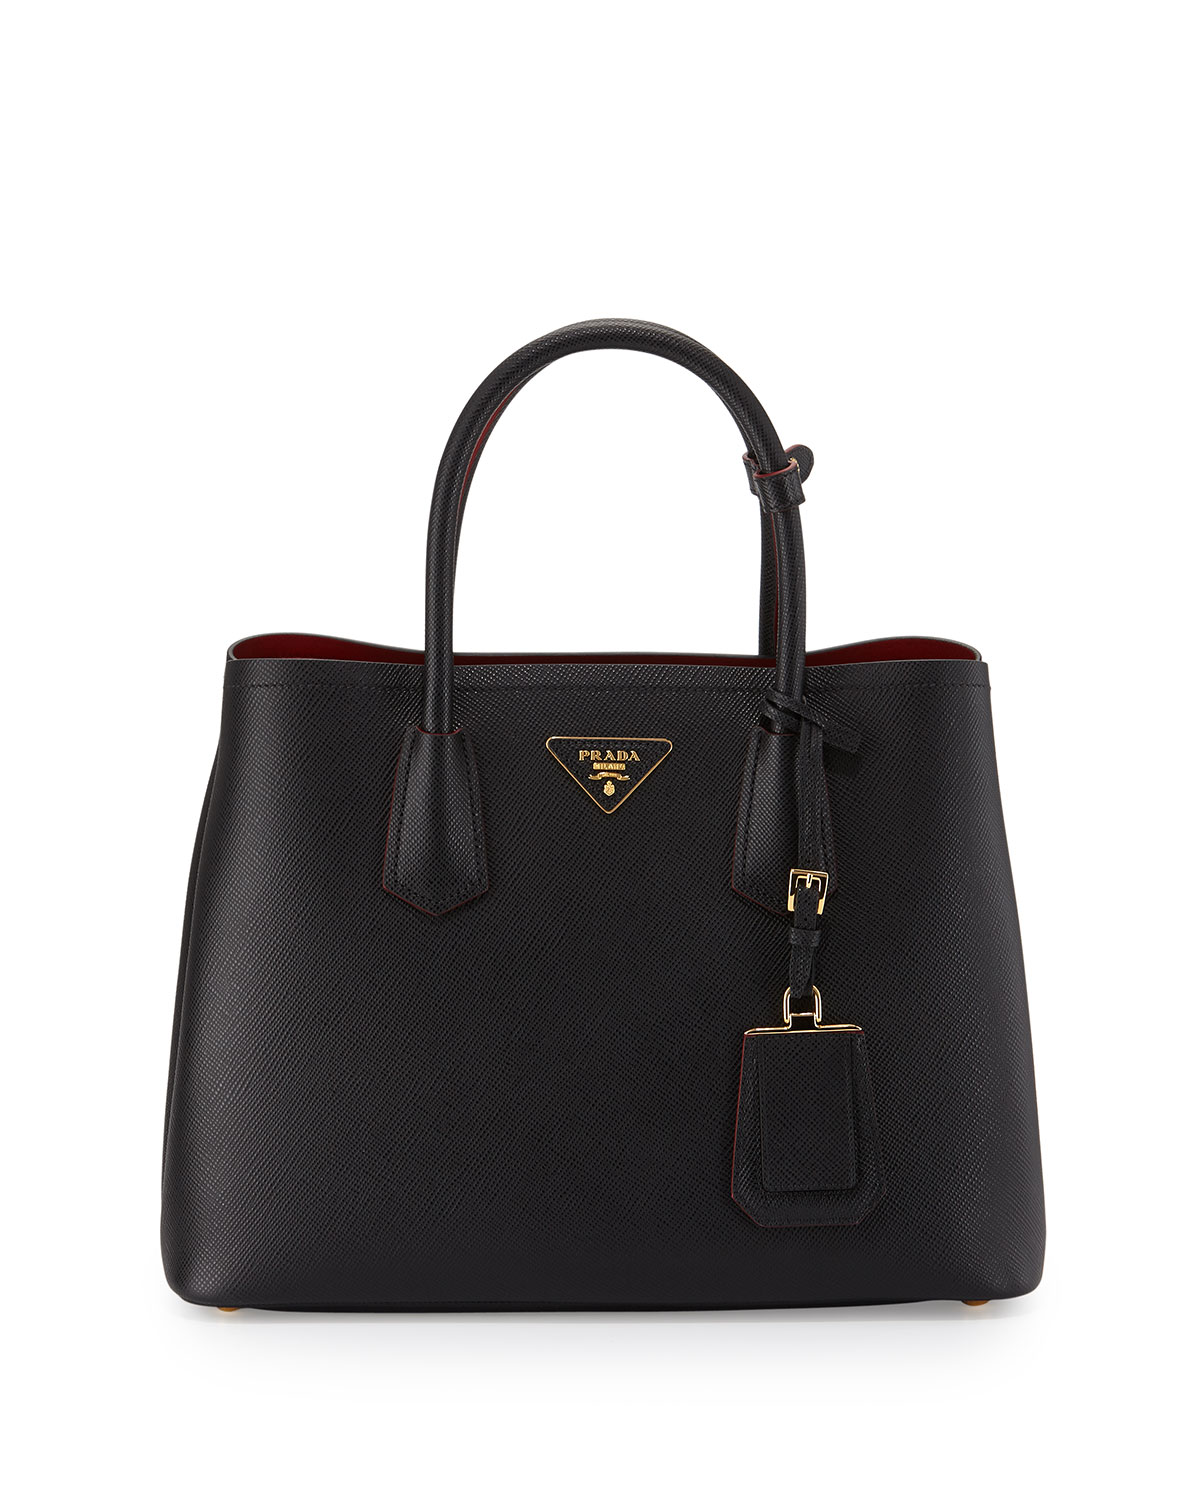 Saffiano Cuir Double Medium Tote Bag, Black/Red (Nero+Fuoco)